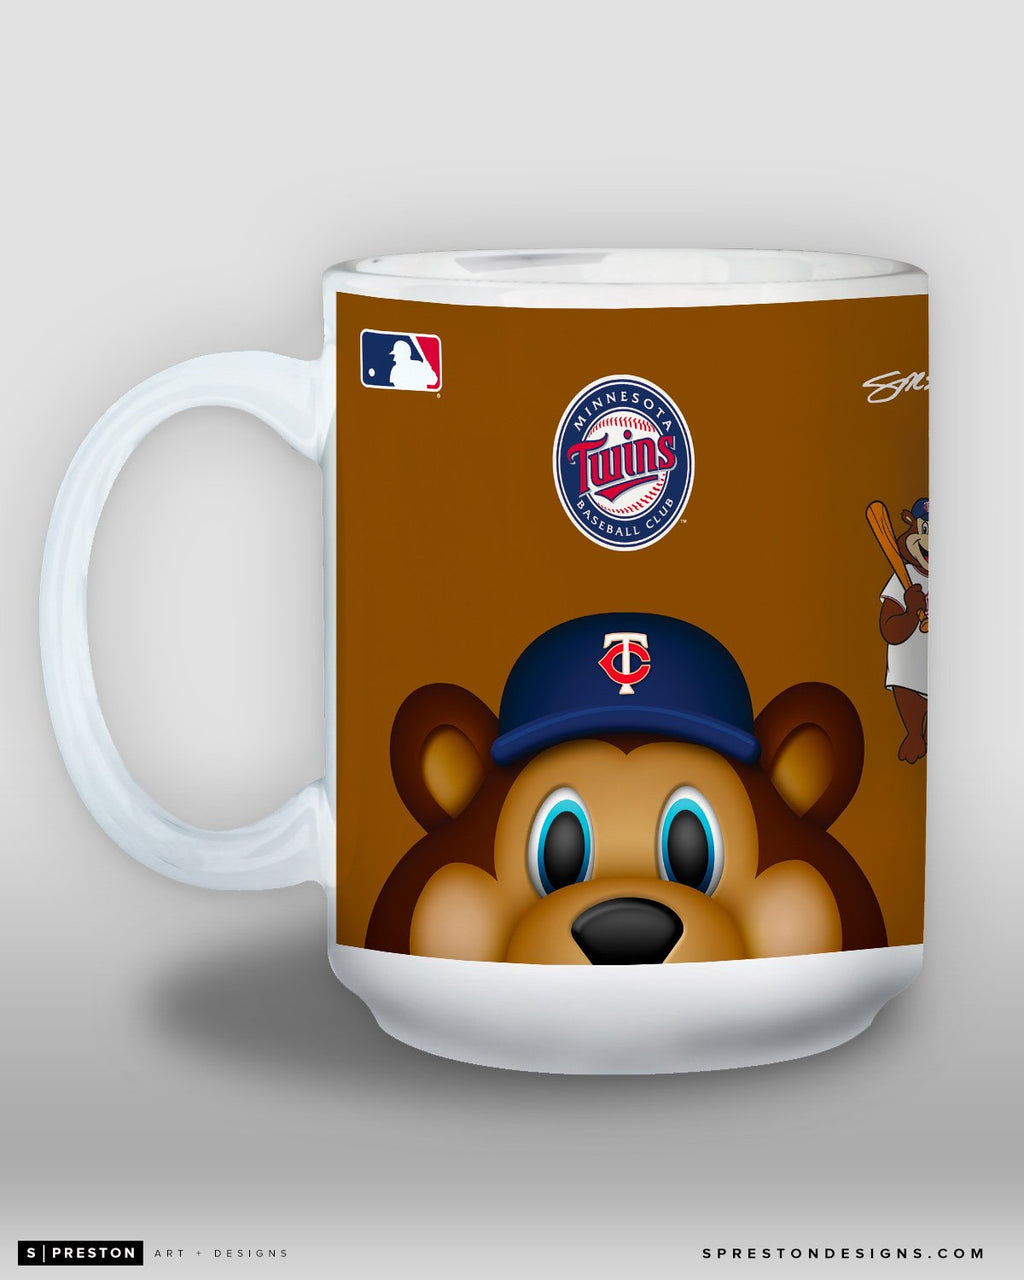 Minimalist T.C. Bear Coffee Mug - MLB Licensed - Minnesota Twins Mascot